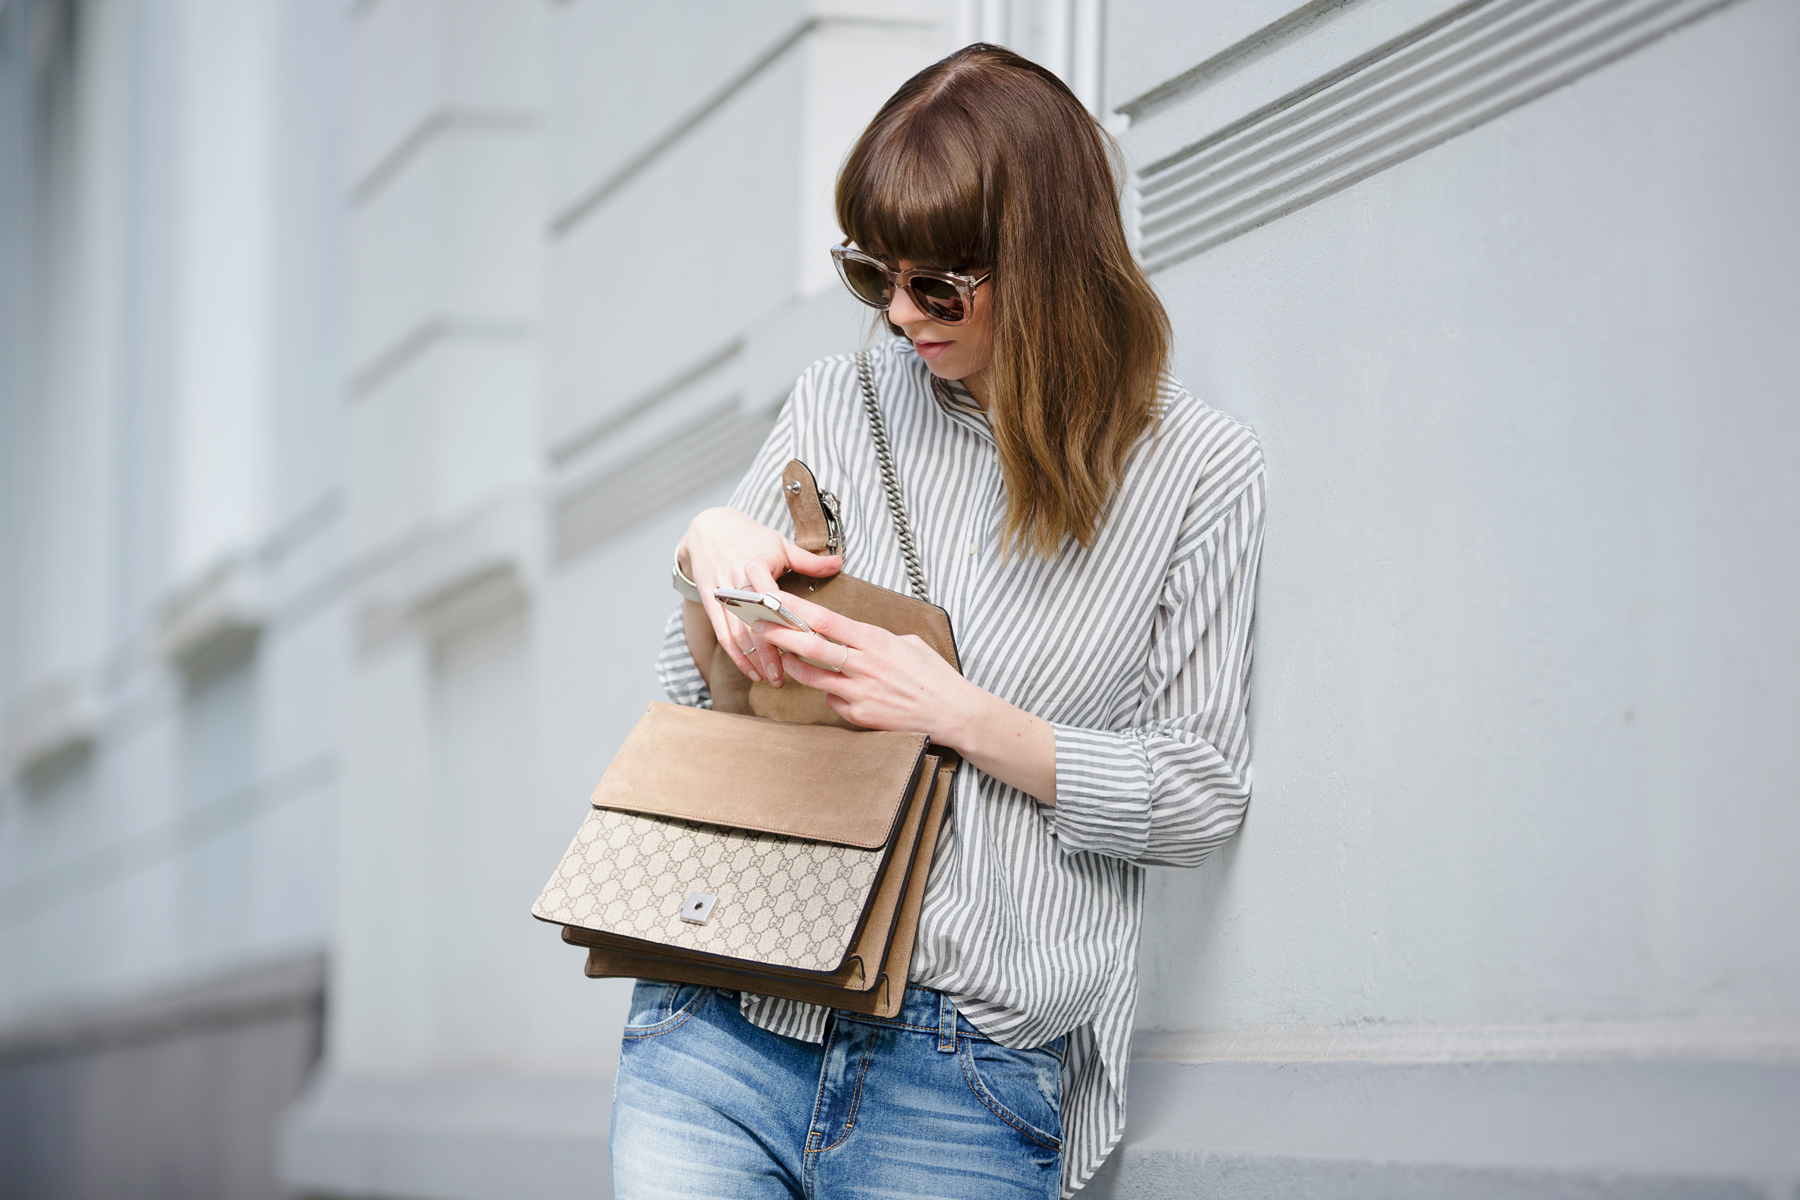 francaise striped shirt parisienne style bangs brunette jeans chanel lookalike heine pumps chic luxury gucci dionysus bag sun spring outfit ootd look le specs fashionblogger ricarda schernus cats & dogs blog 4